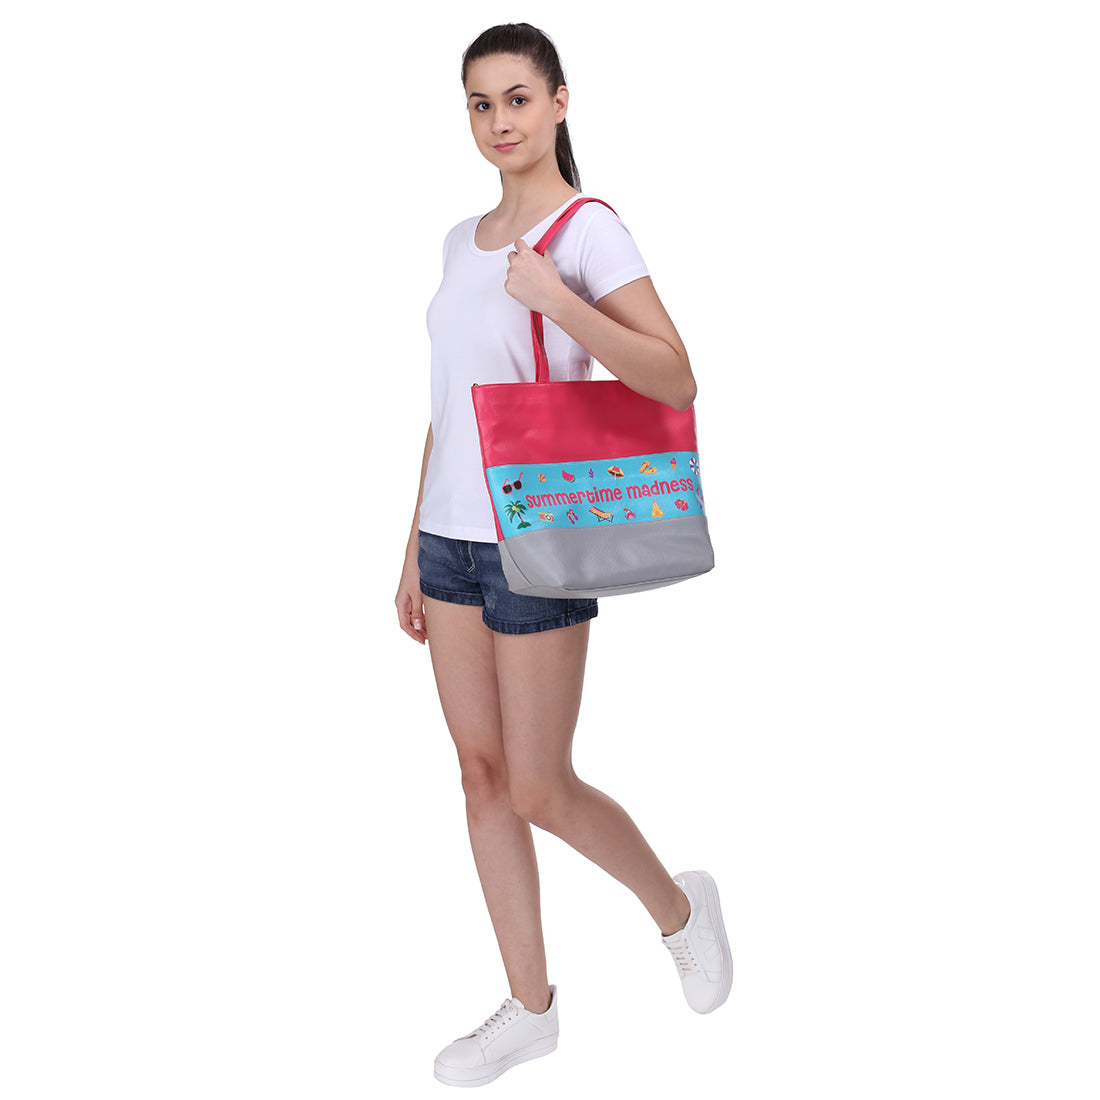 Summertime Madness Women's Beach Bag